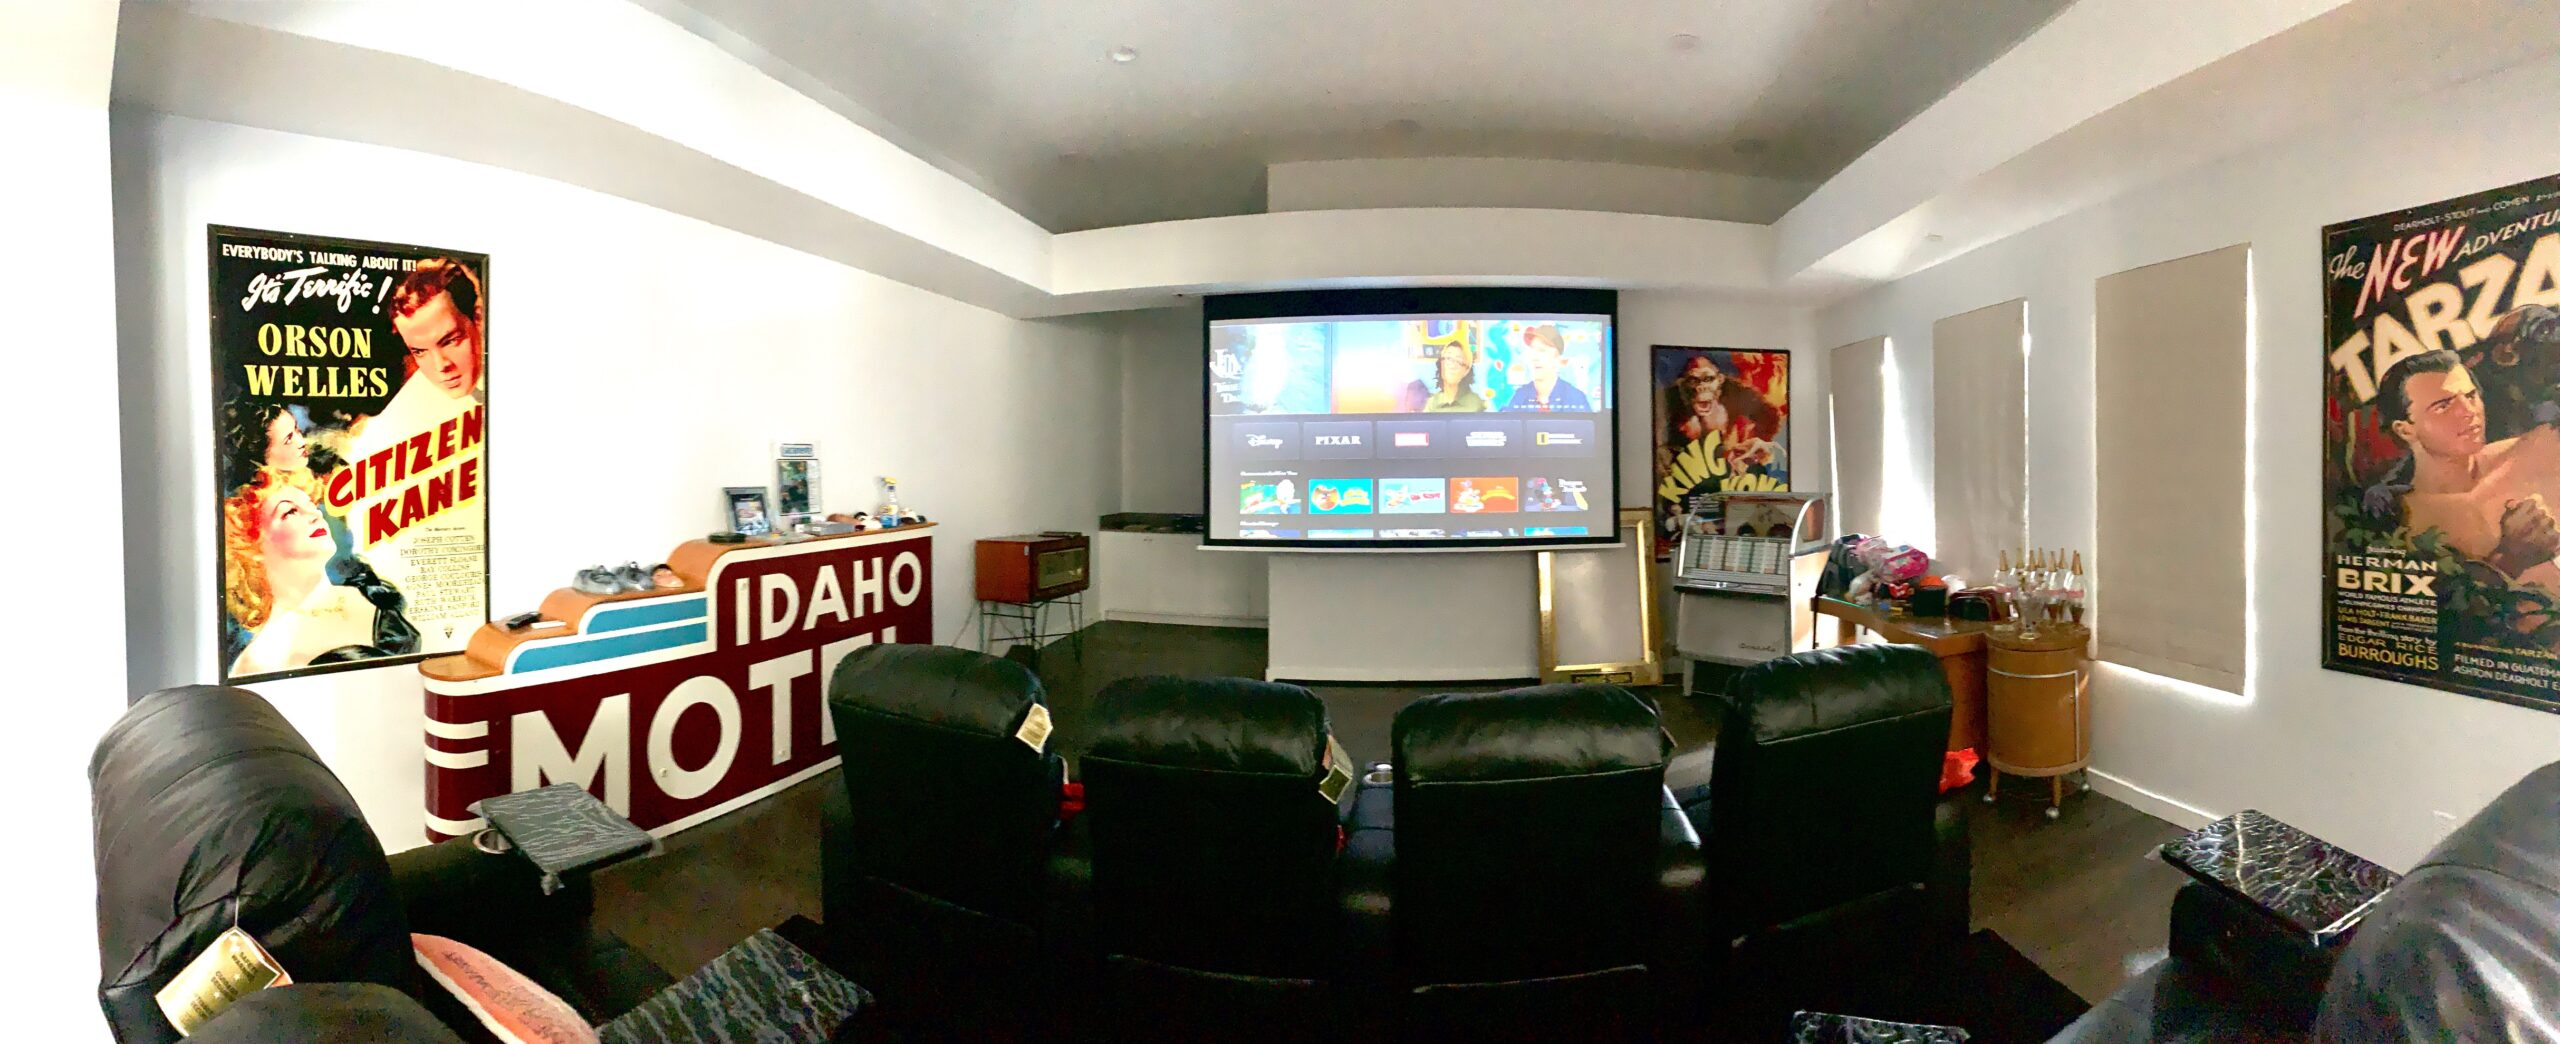 Media room retractable screen, custom leather theater seating and motorized shades